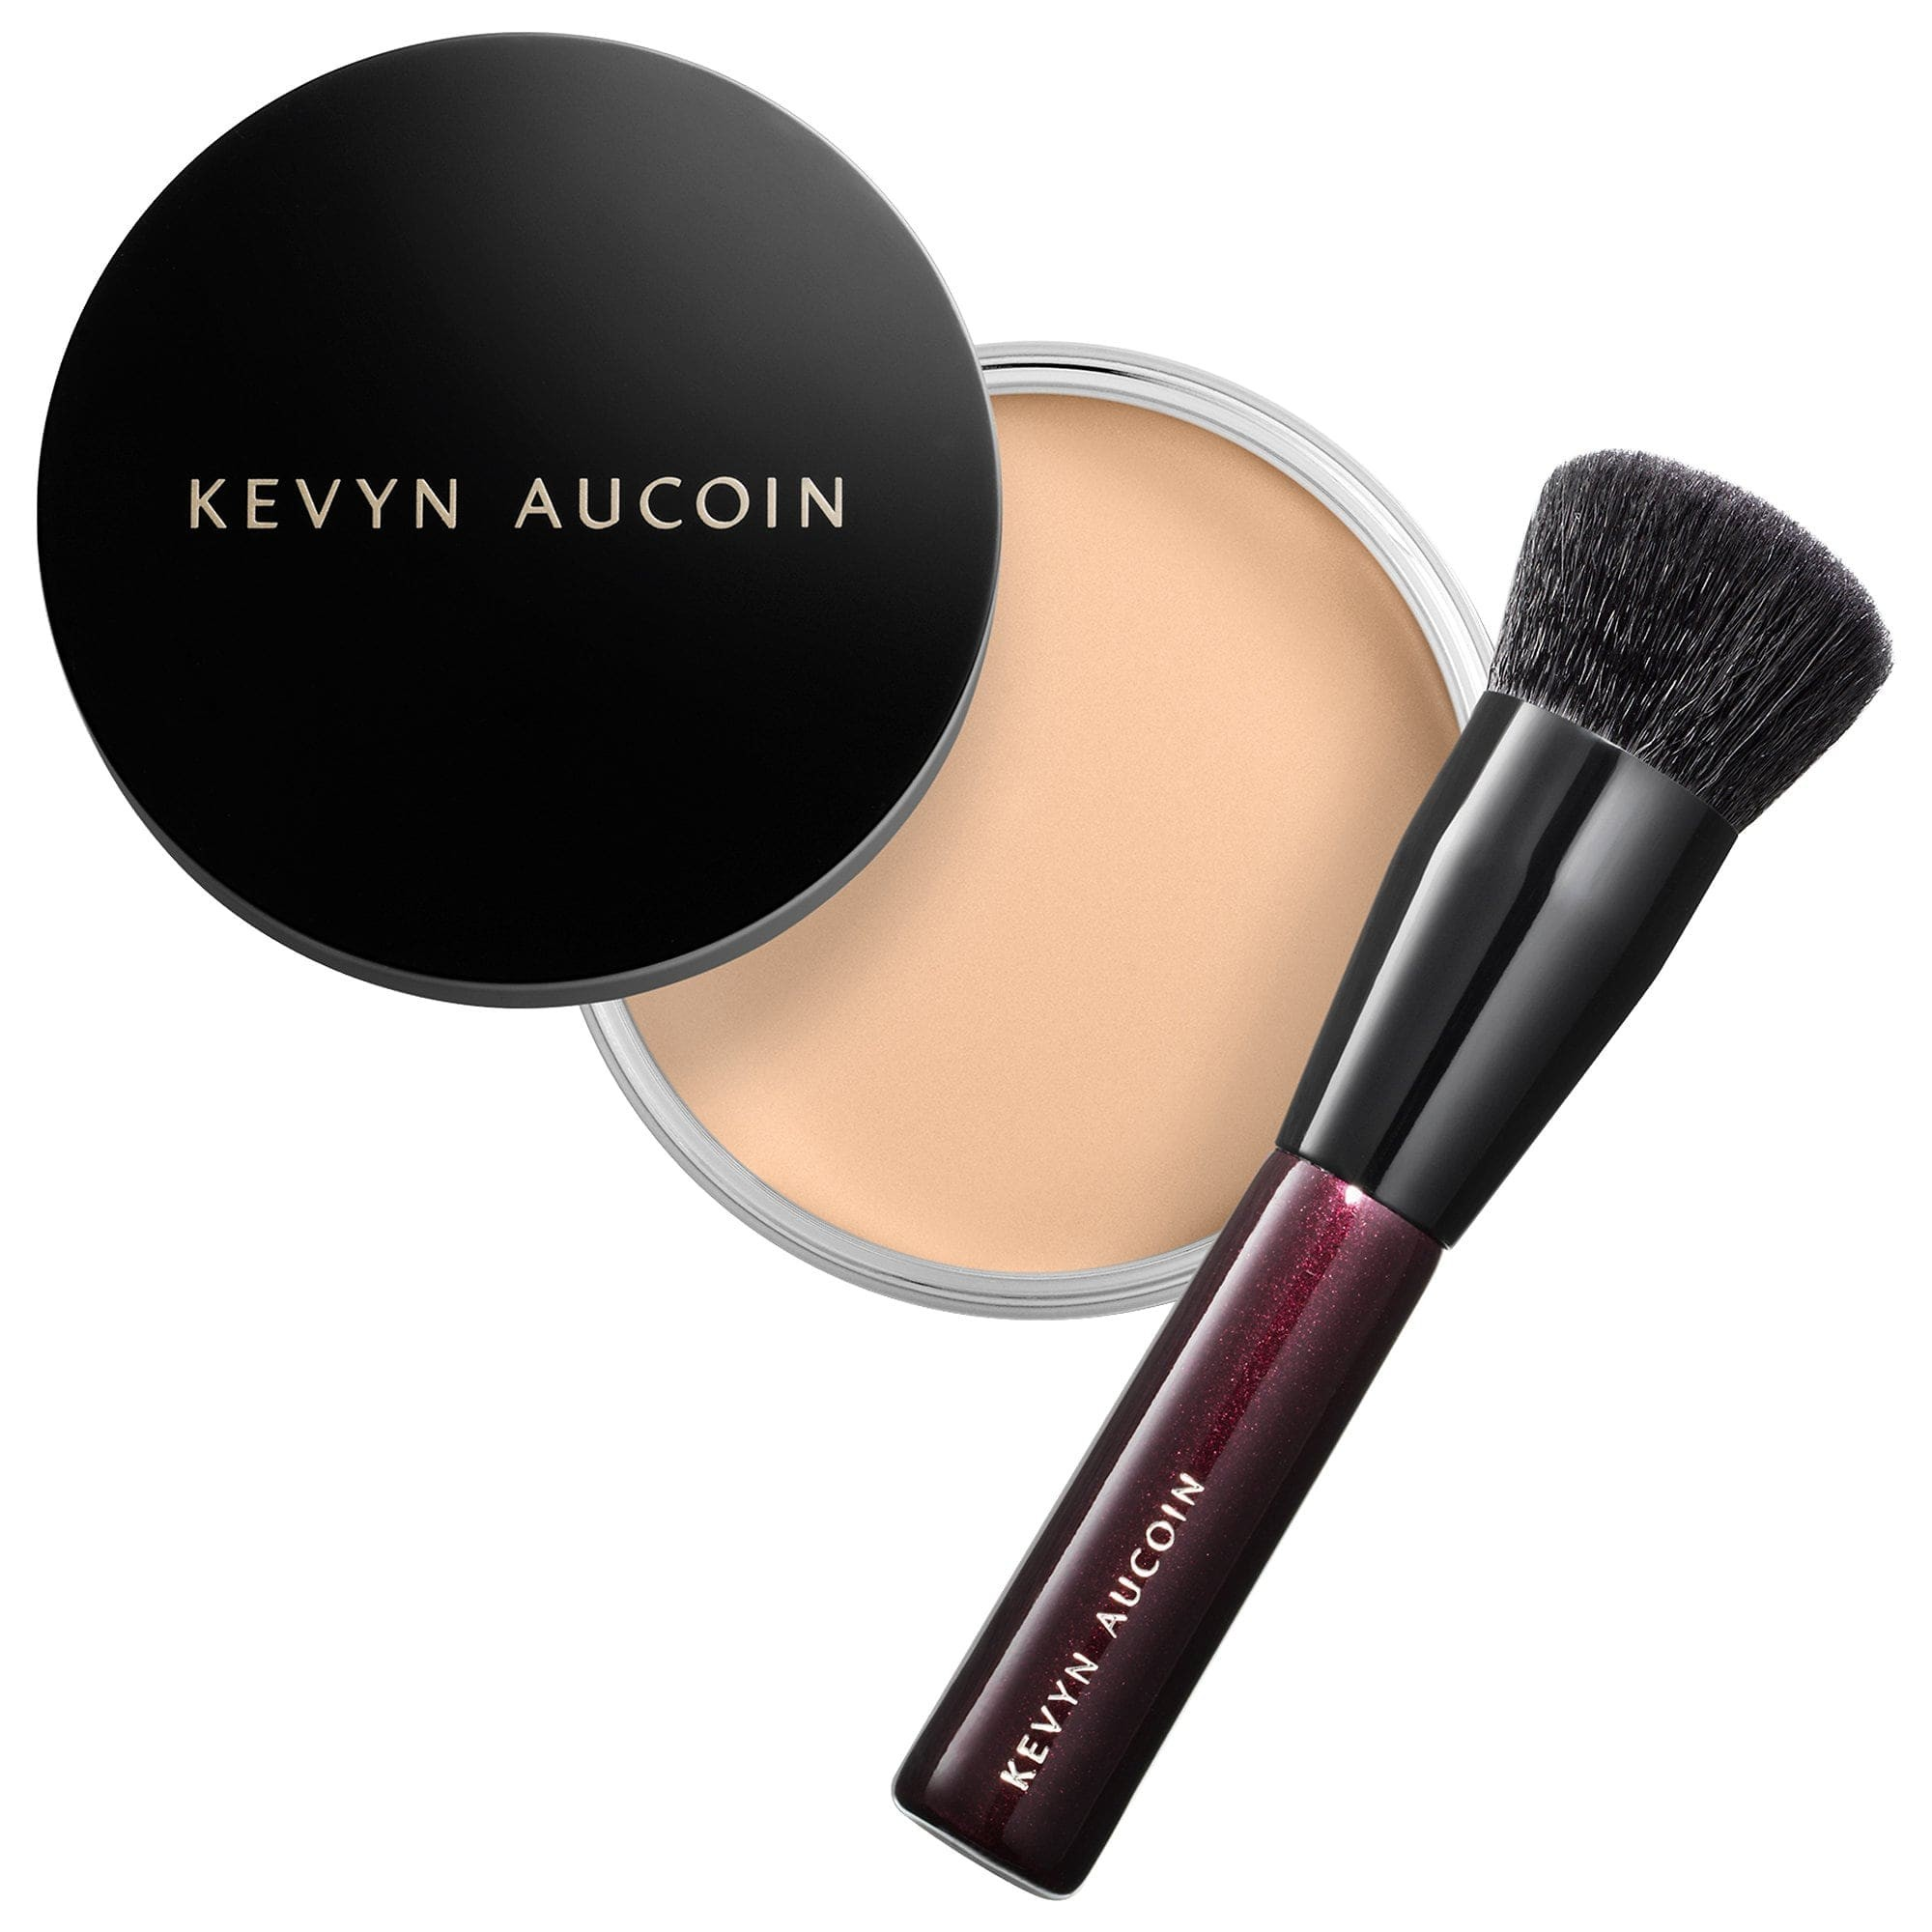 Kevyn Aucoin Foundation Balm Light FB 01